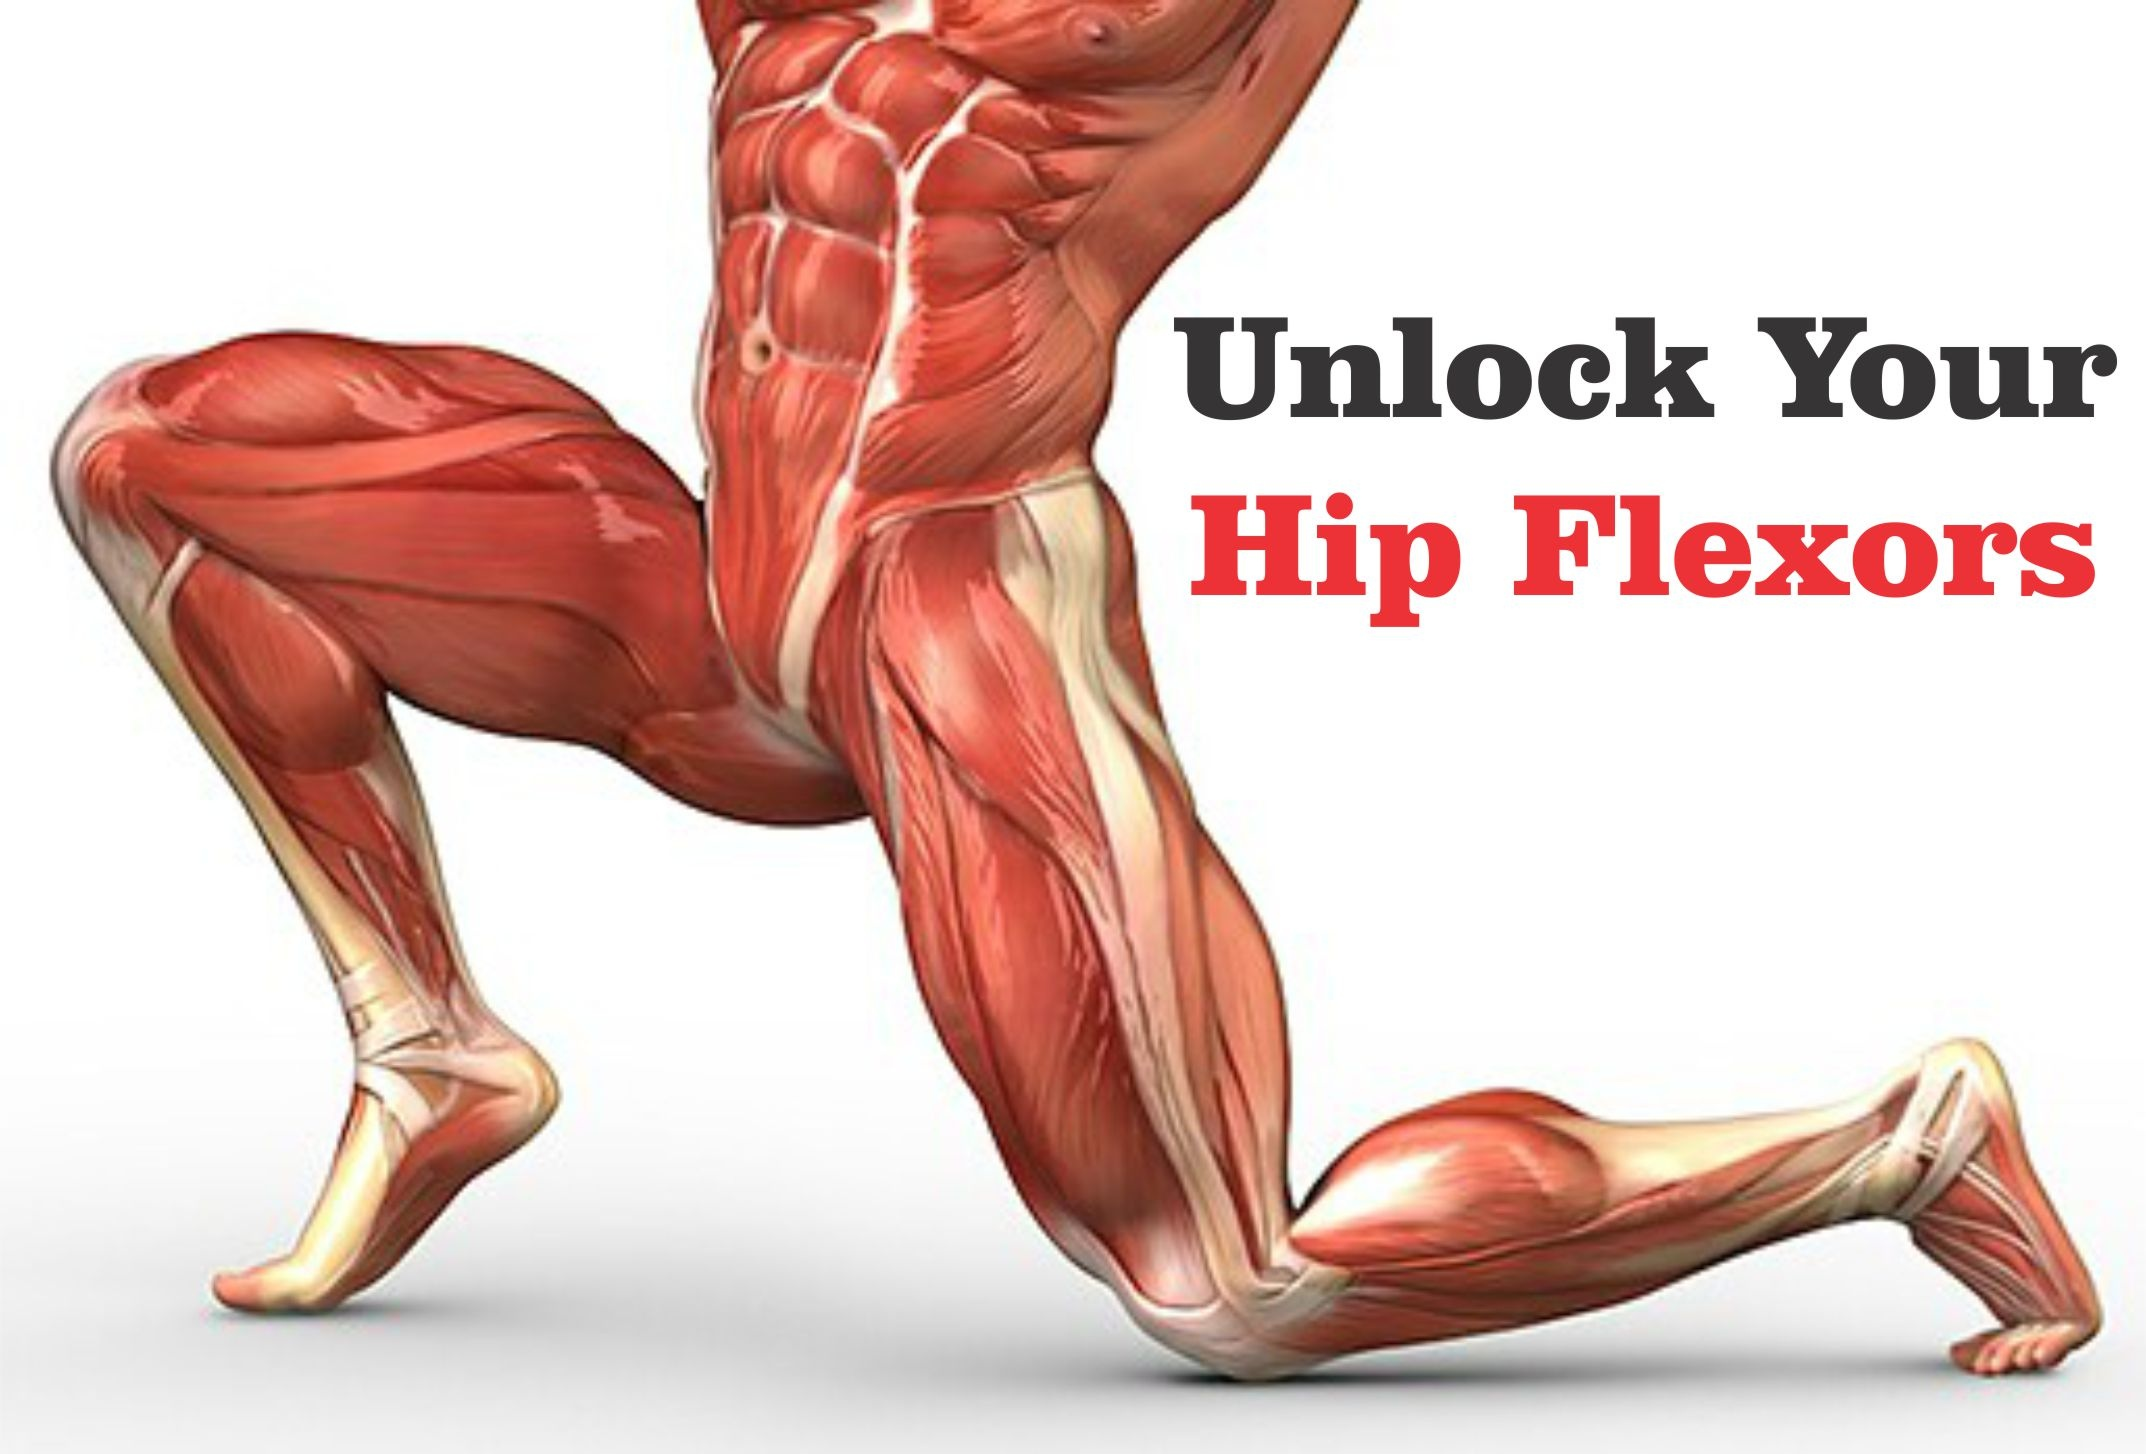 Test Tight Hip Flexors